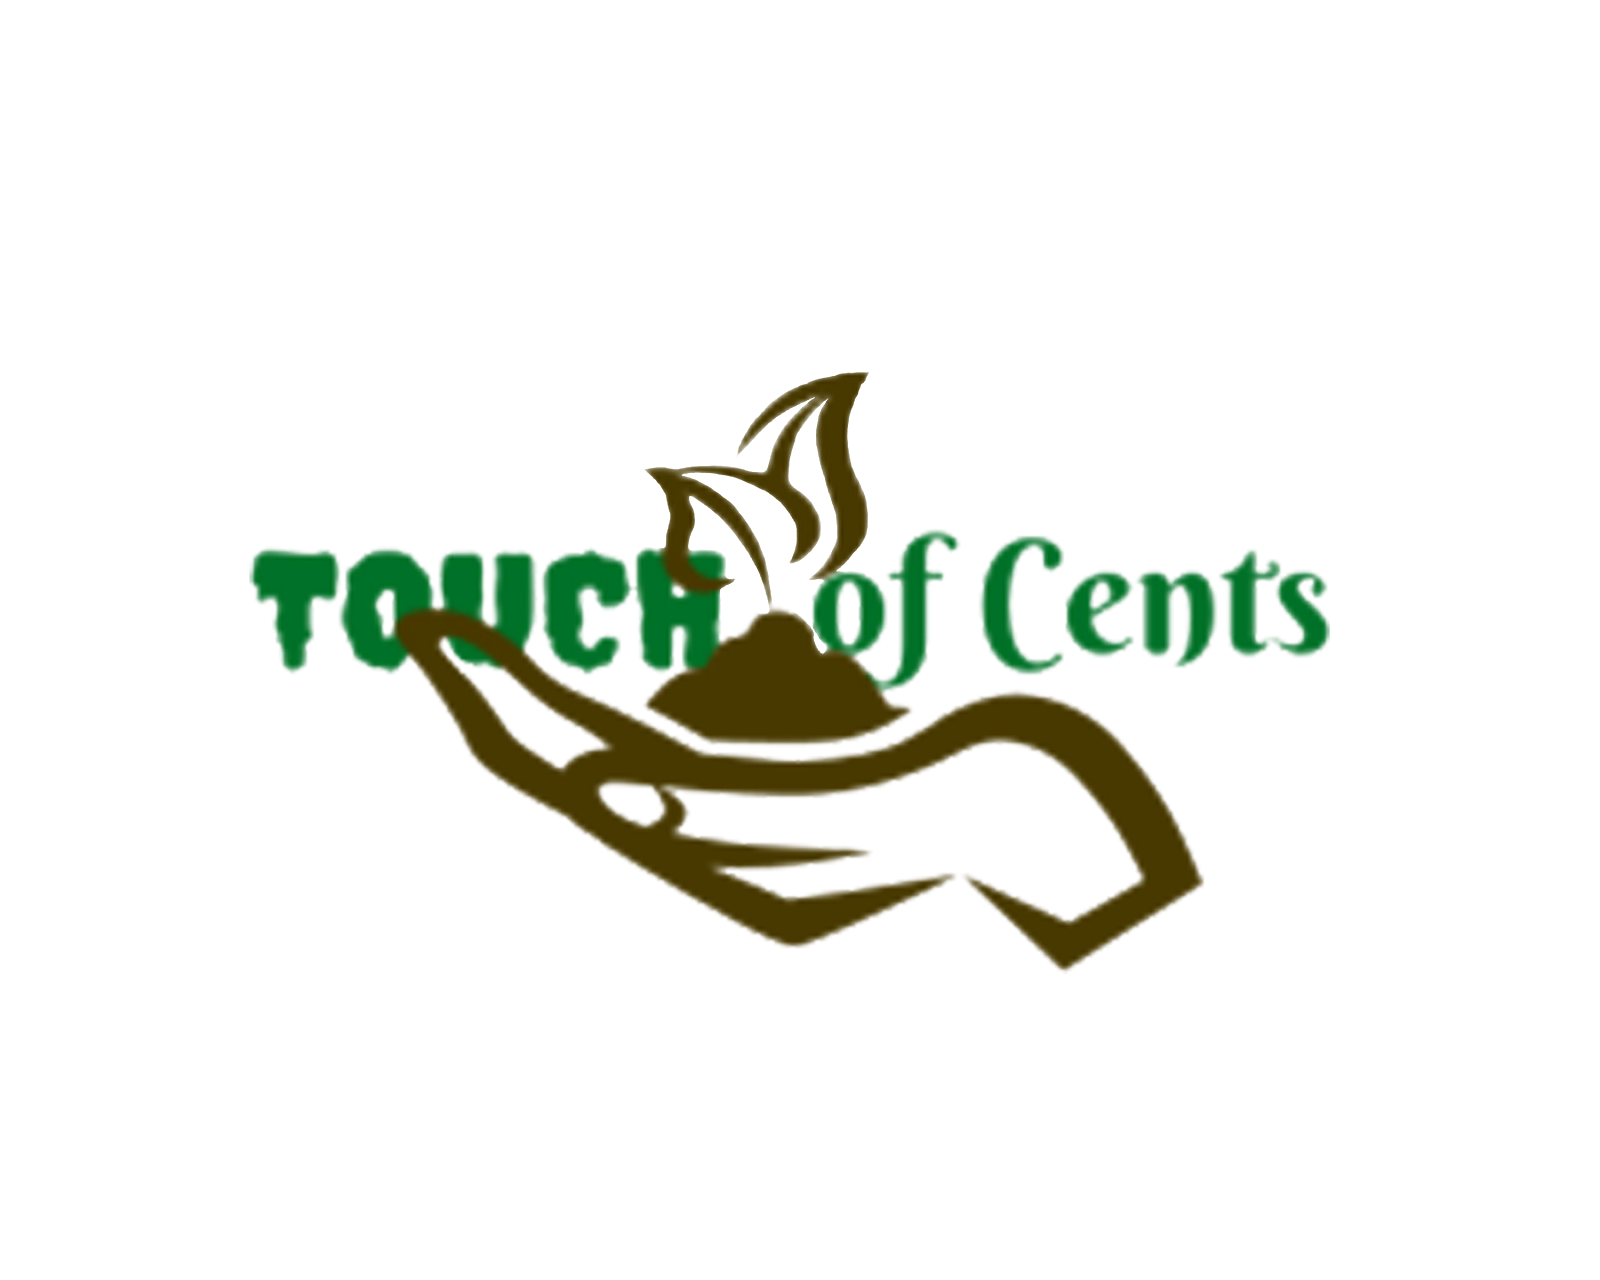 Touch of Cents